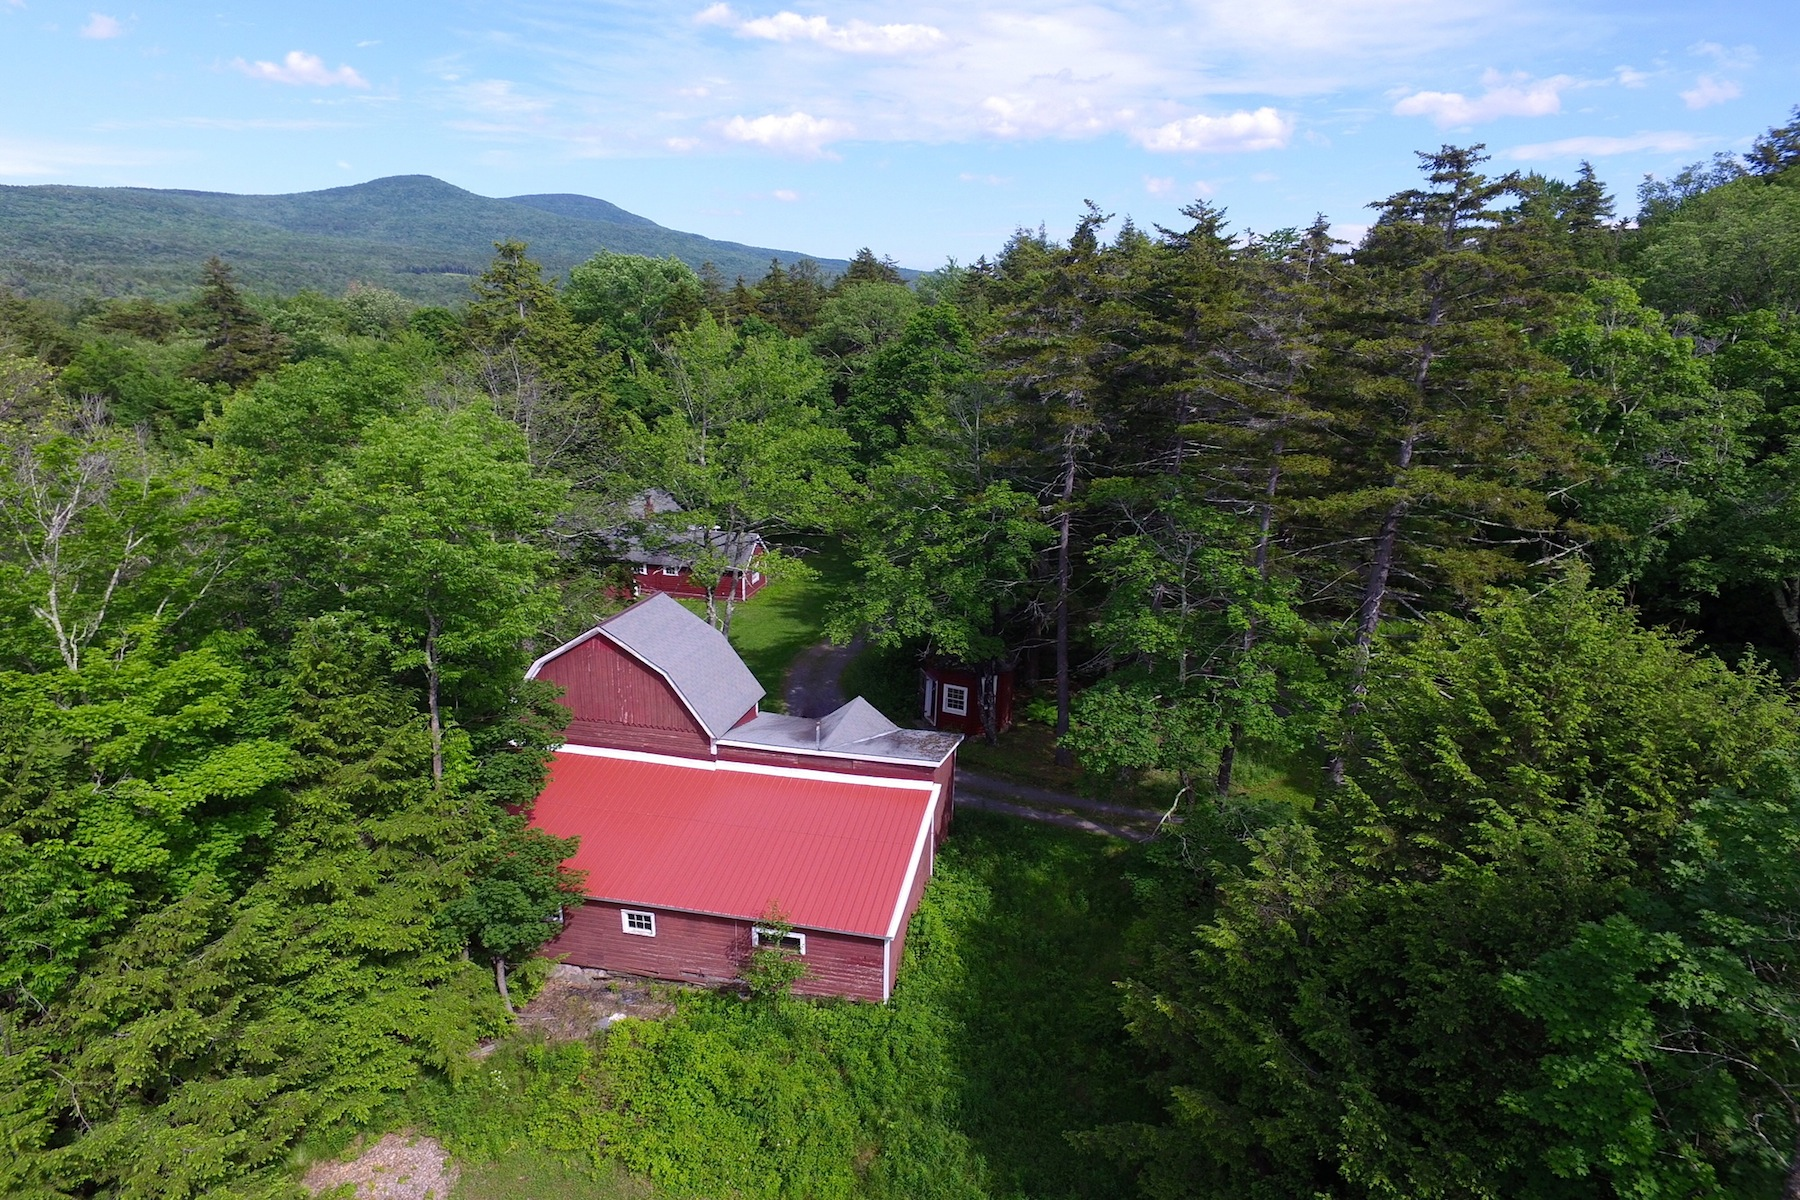 Single Family Home for Sale at Carver's Barn - A Love for the Arts 81 Green Hill Rd Hunter, New York 12427 United States